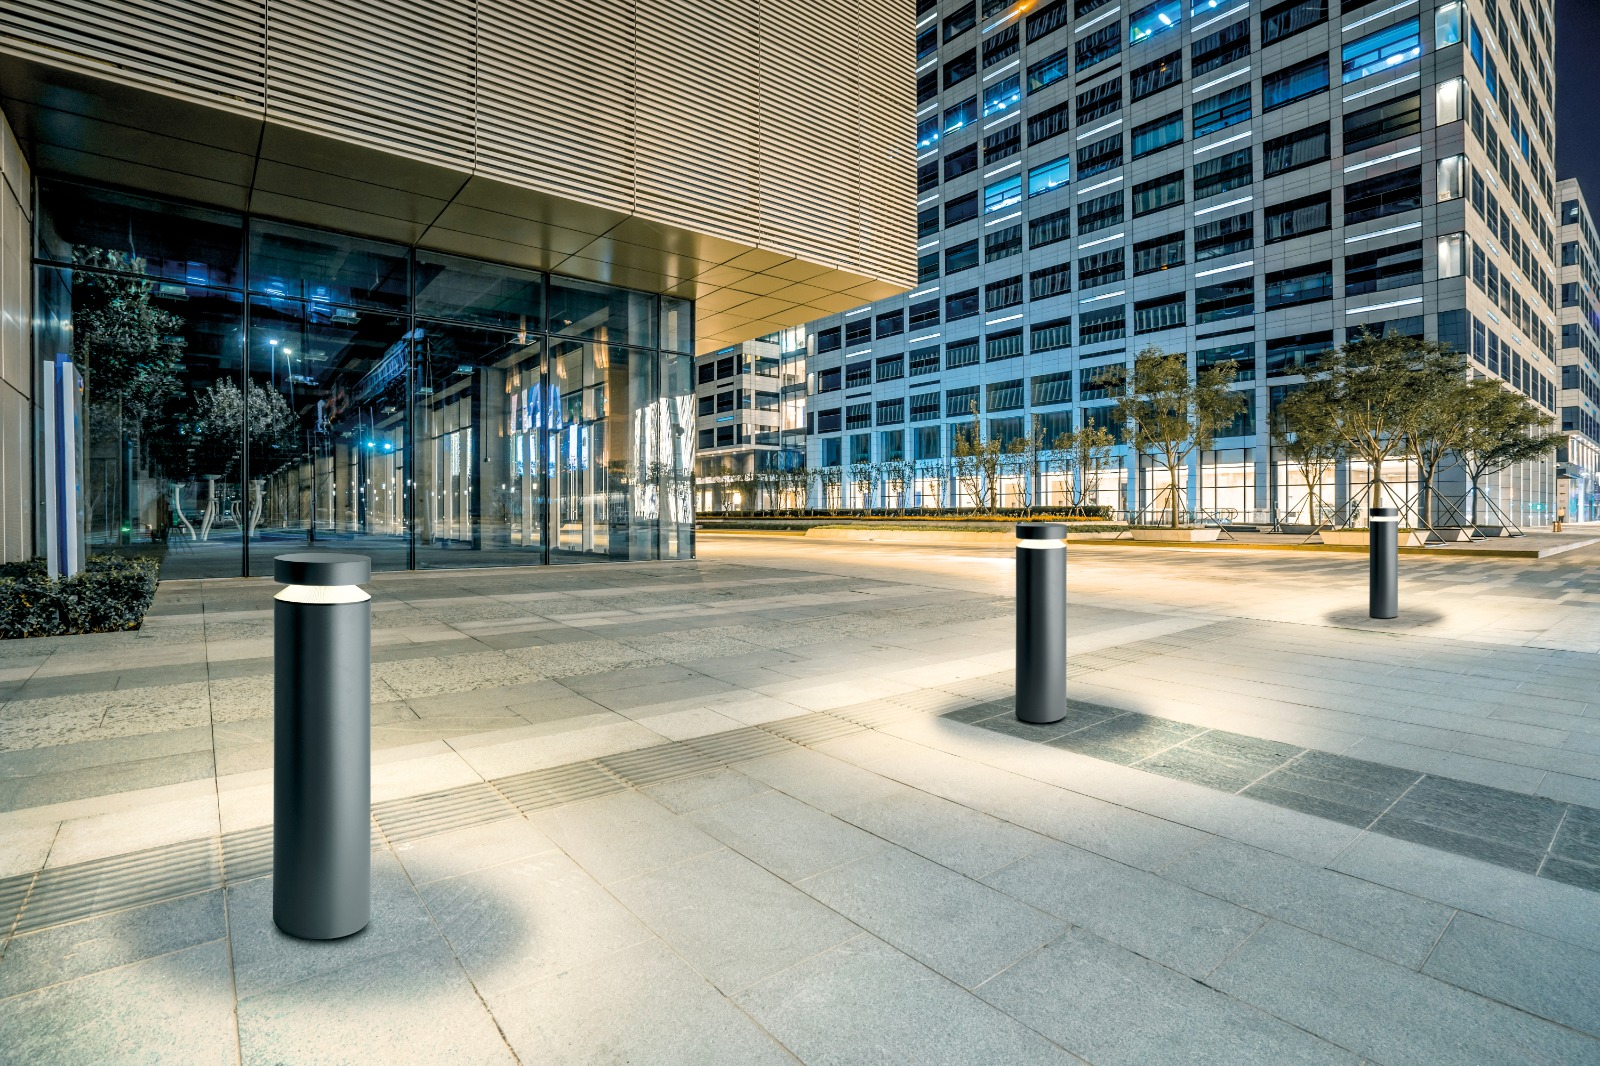 tonight-bollard-paletto-arredo-urbao-urban-lighting